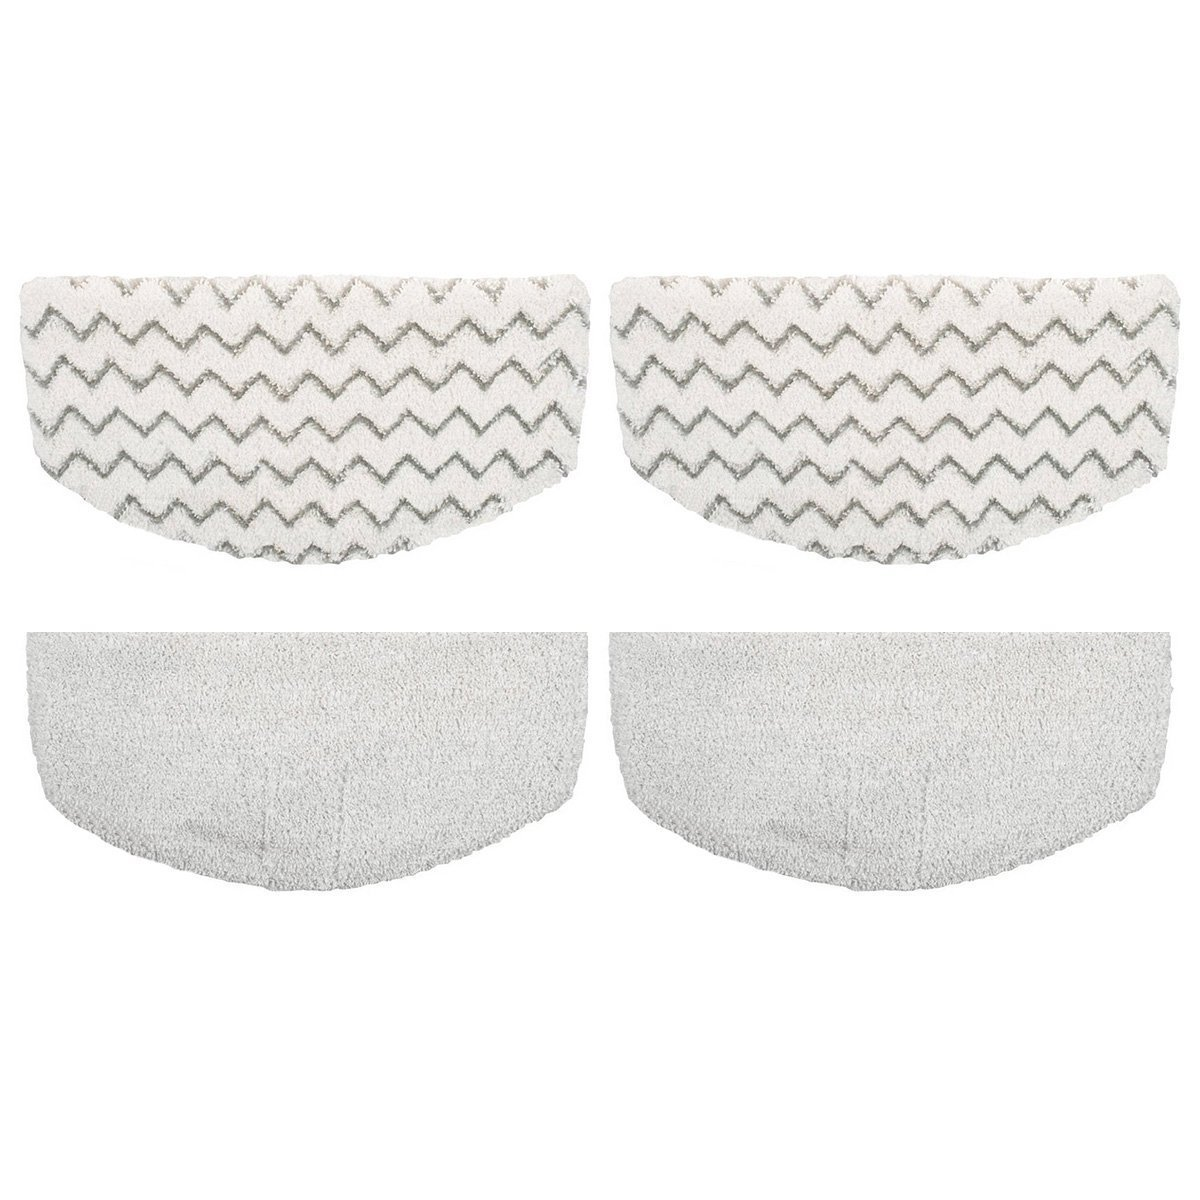 KHTO 4Pack Steam Mop Pads Replacement for Bissell Powerfresh Steam Mop 1940 1440 1544 Series, Model 19402 19404 19408 1940A 1940Q 1940T 1940W, Replace 5938